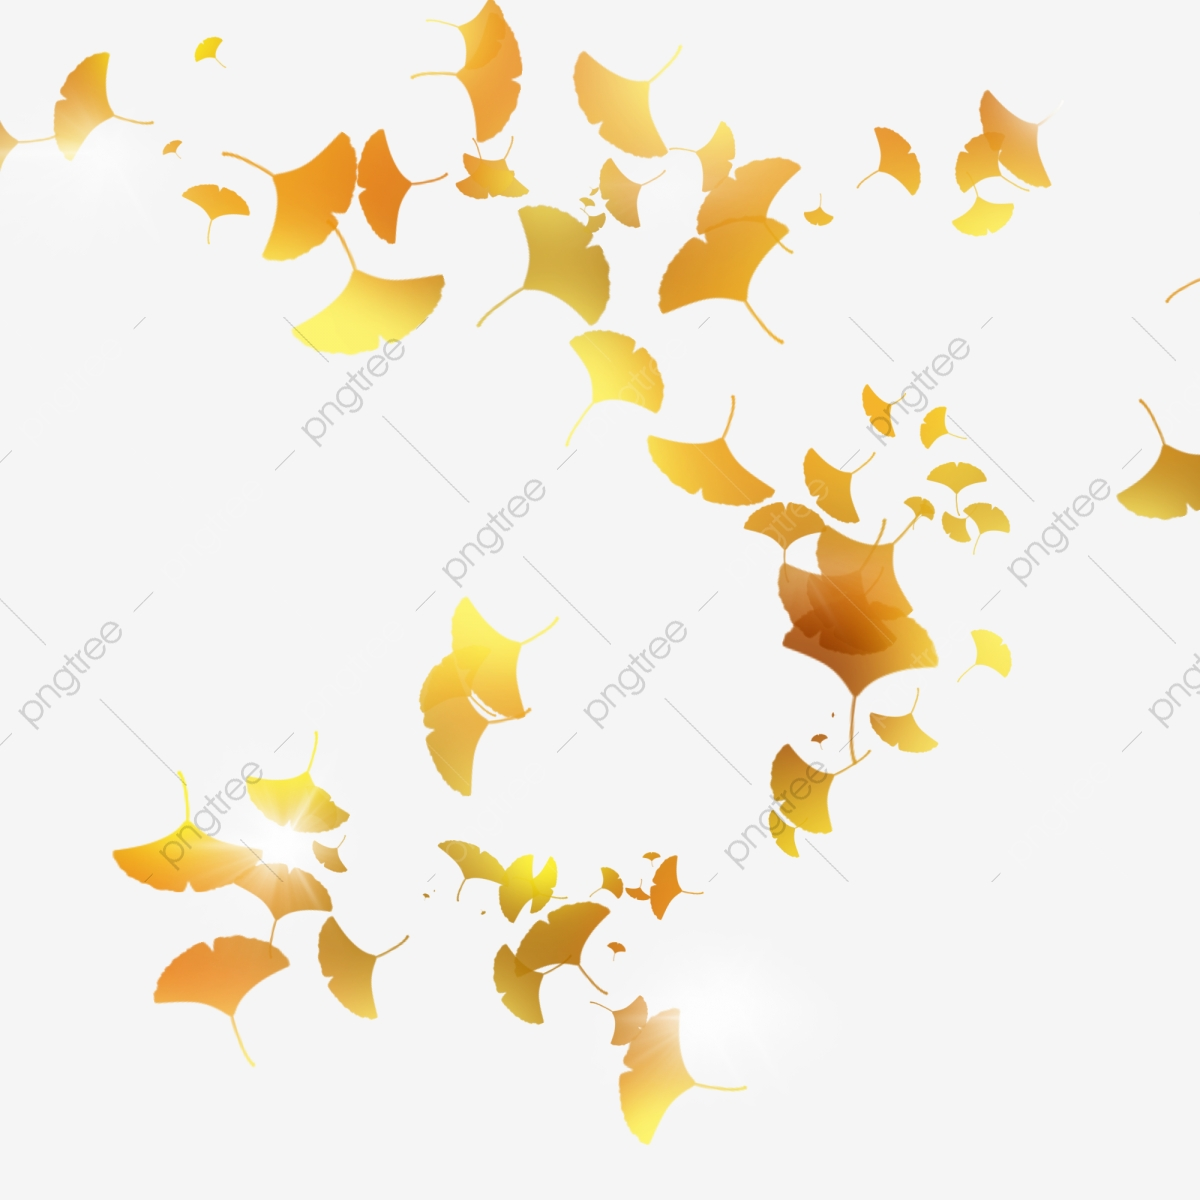 hight resolution of commercial use resource upgrade to premium plan and get license authorization upgradenow autumn leaves fall orange background